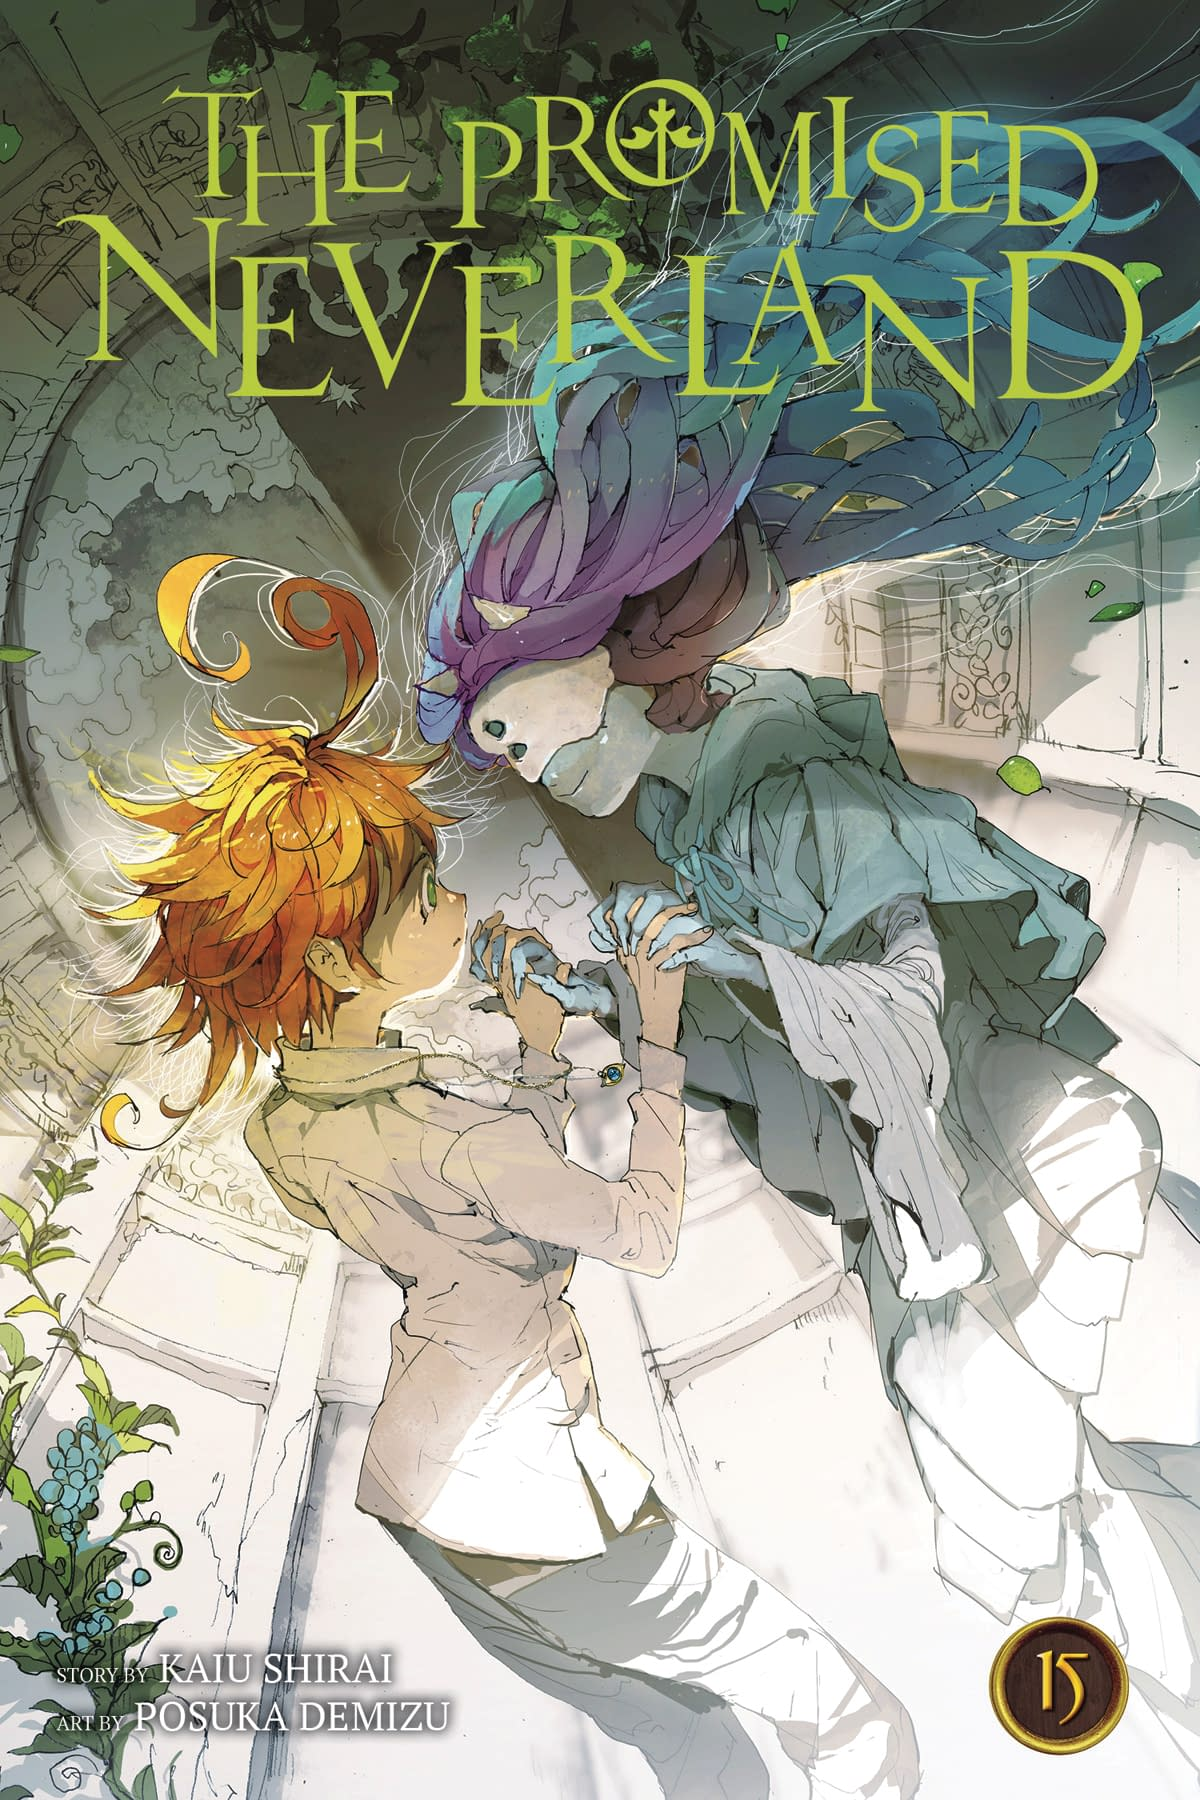 PROMISED NEVERLAND GN VOL 15